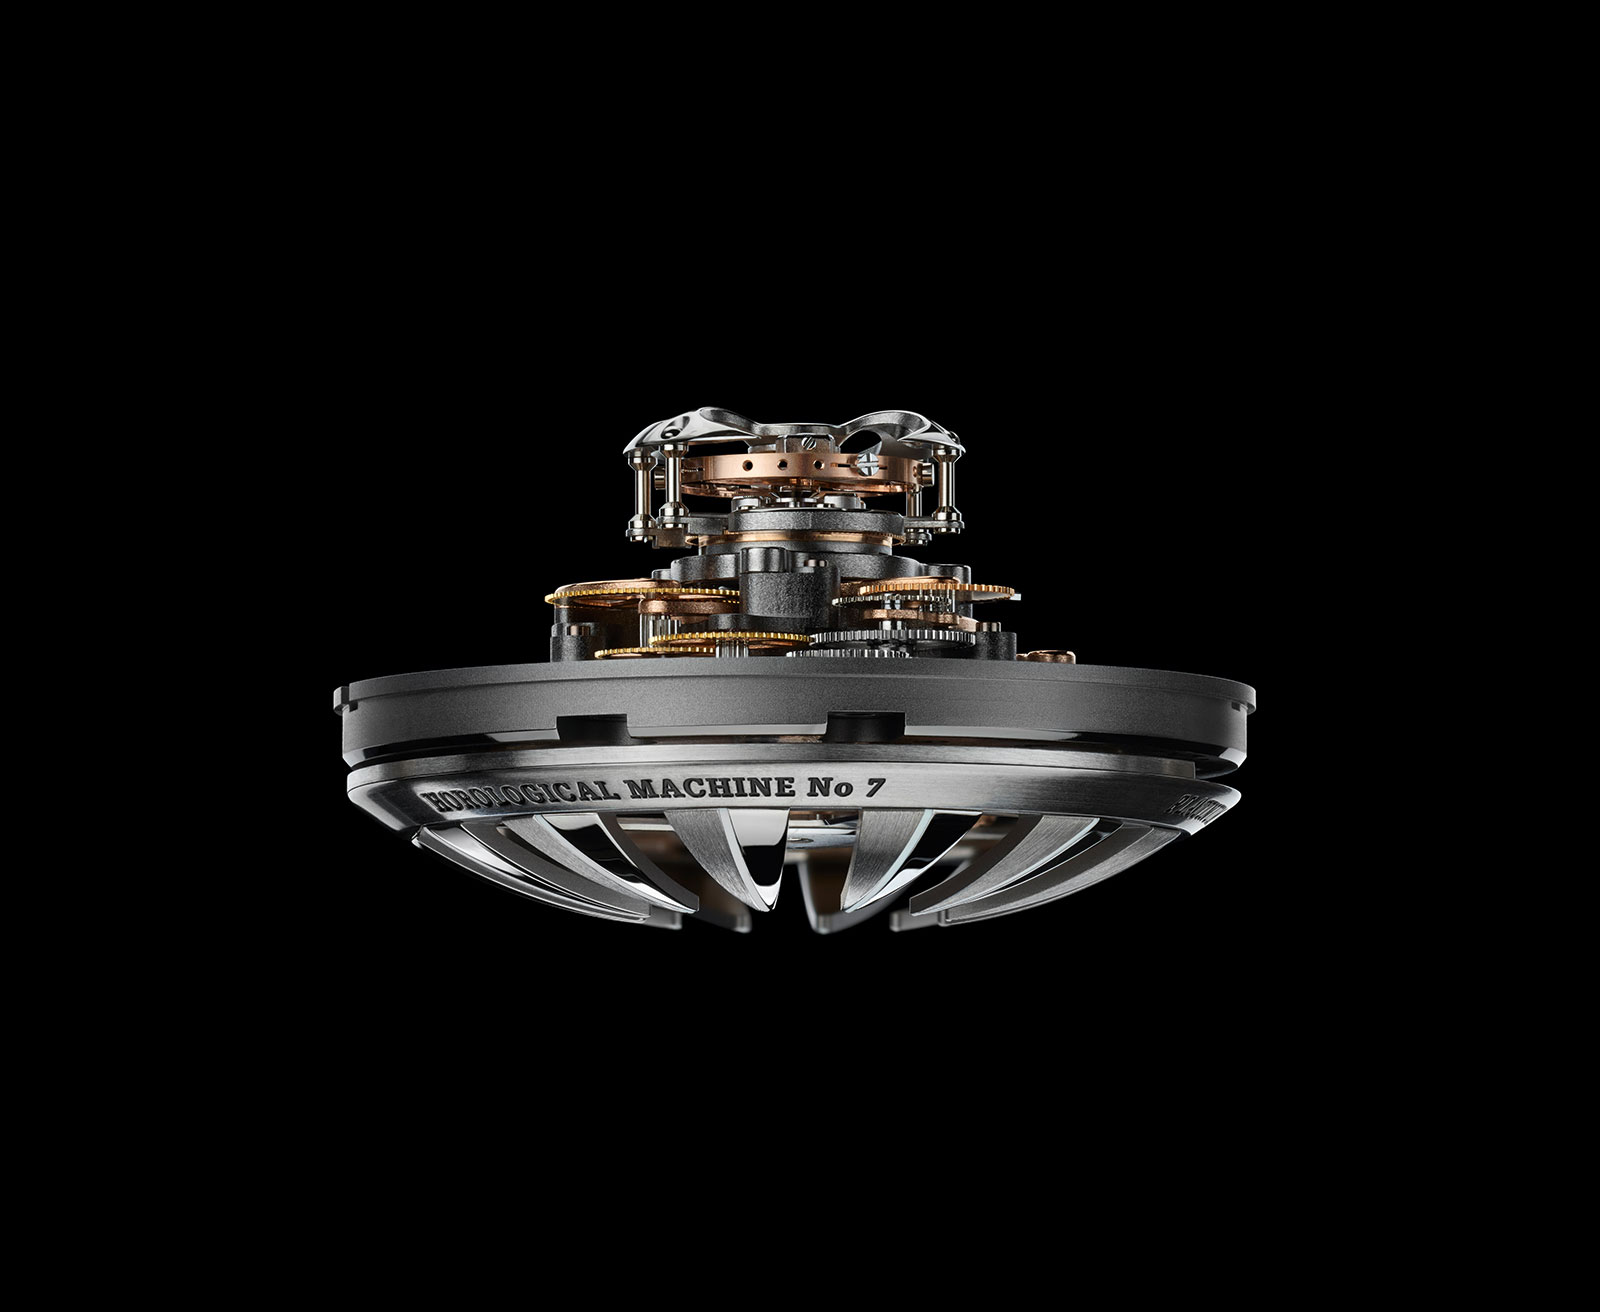 MB&F HM7 Aquapod movement